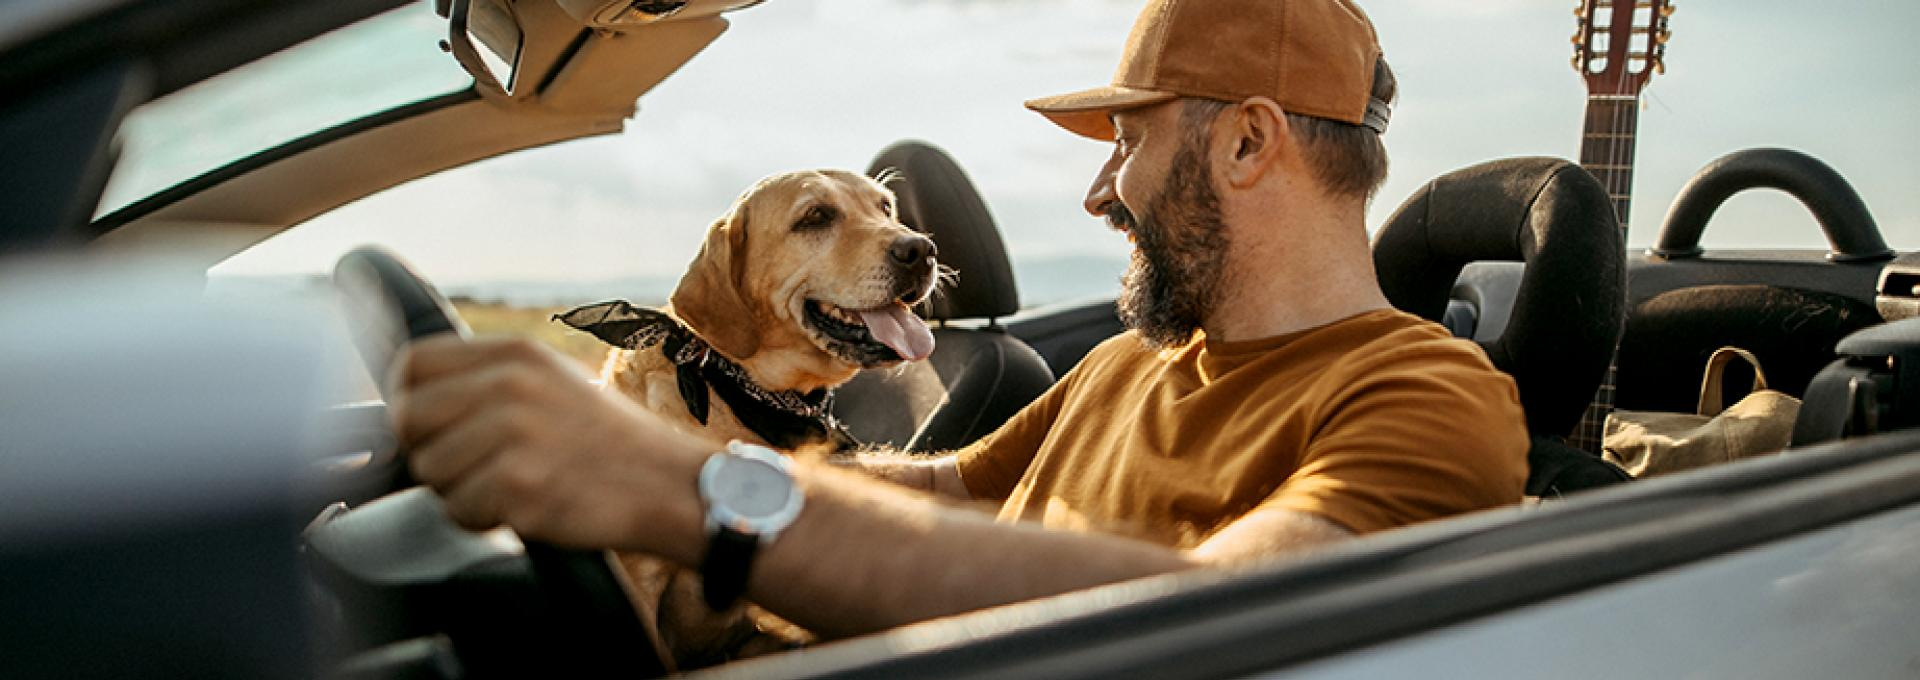 Man and dog in convertible